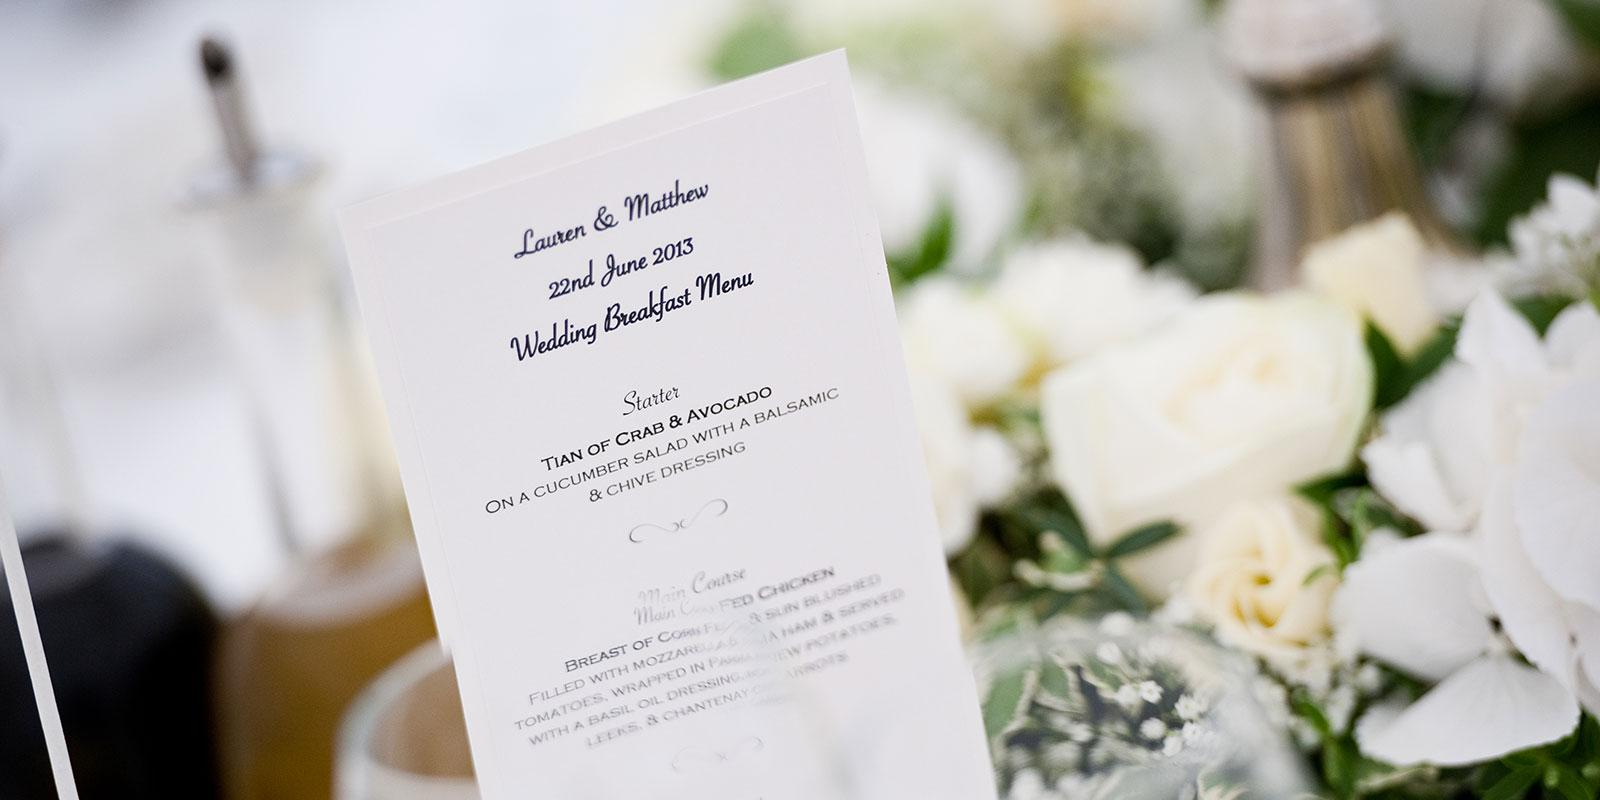 Burhill wedding sample menu